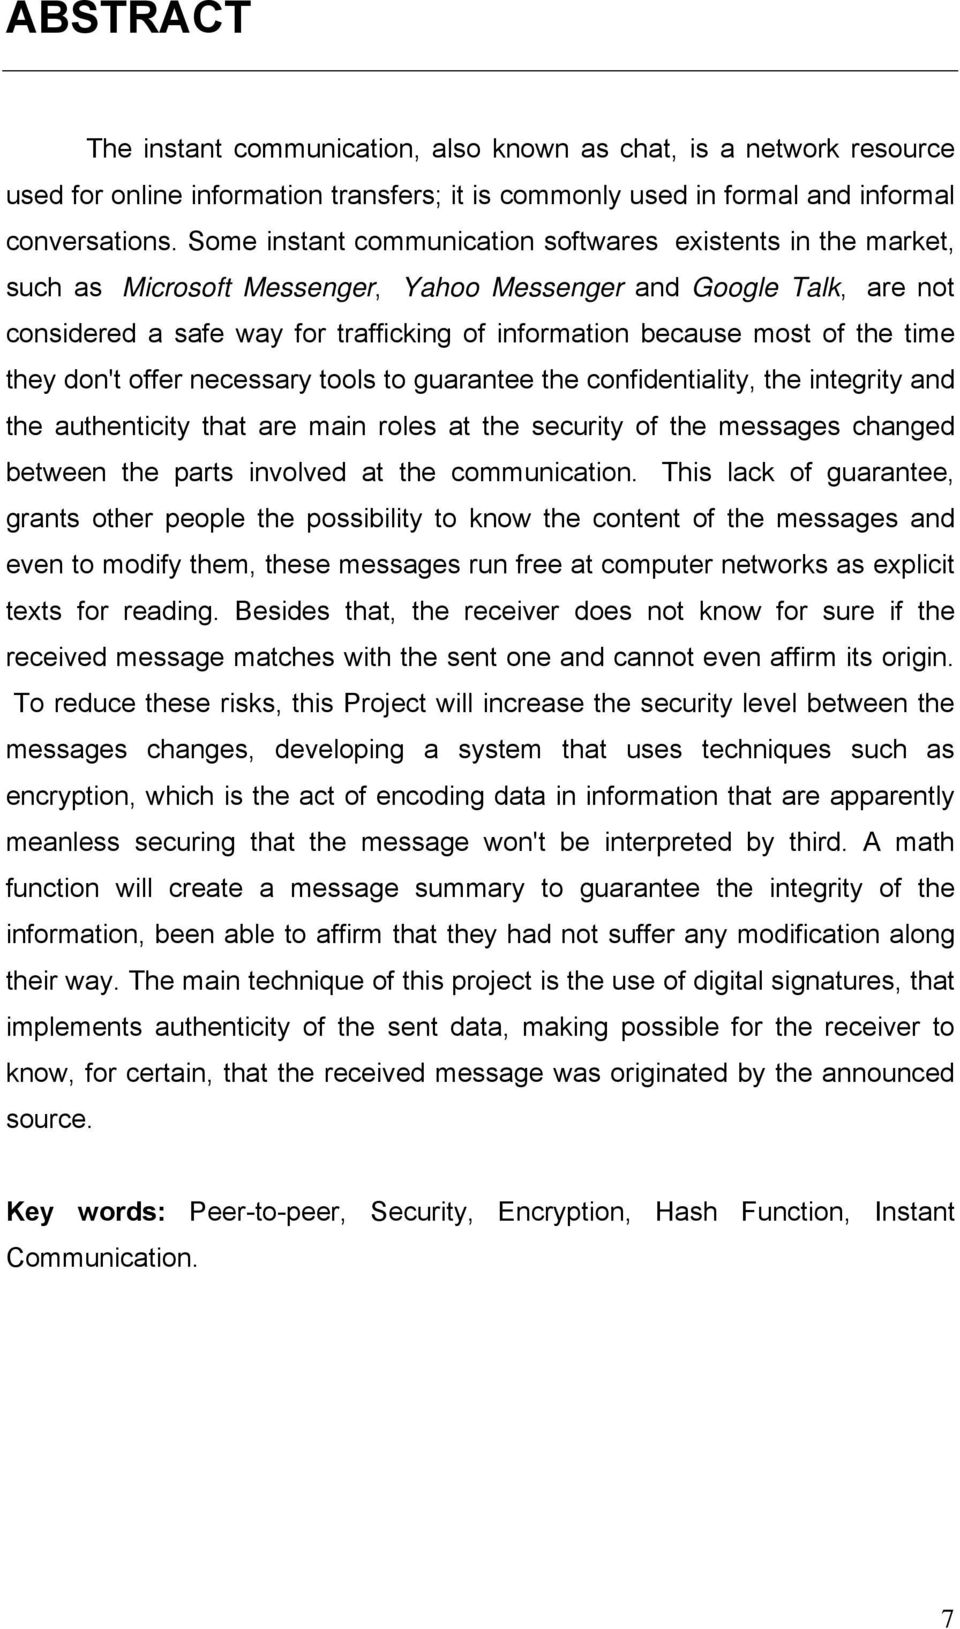 of the time they don't offer necessary tools to guarantee the confidentiality, the integrity and the authenticity that are main roles at the security of the messages changed between the parts